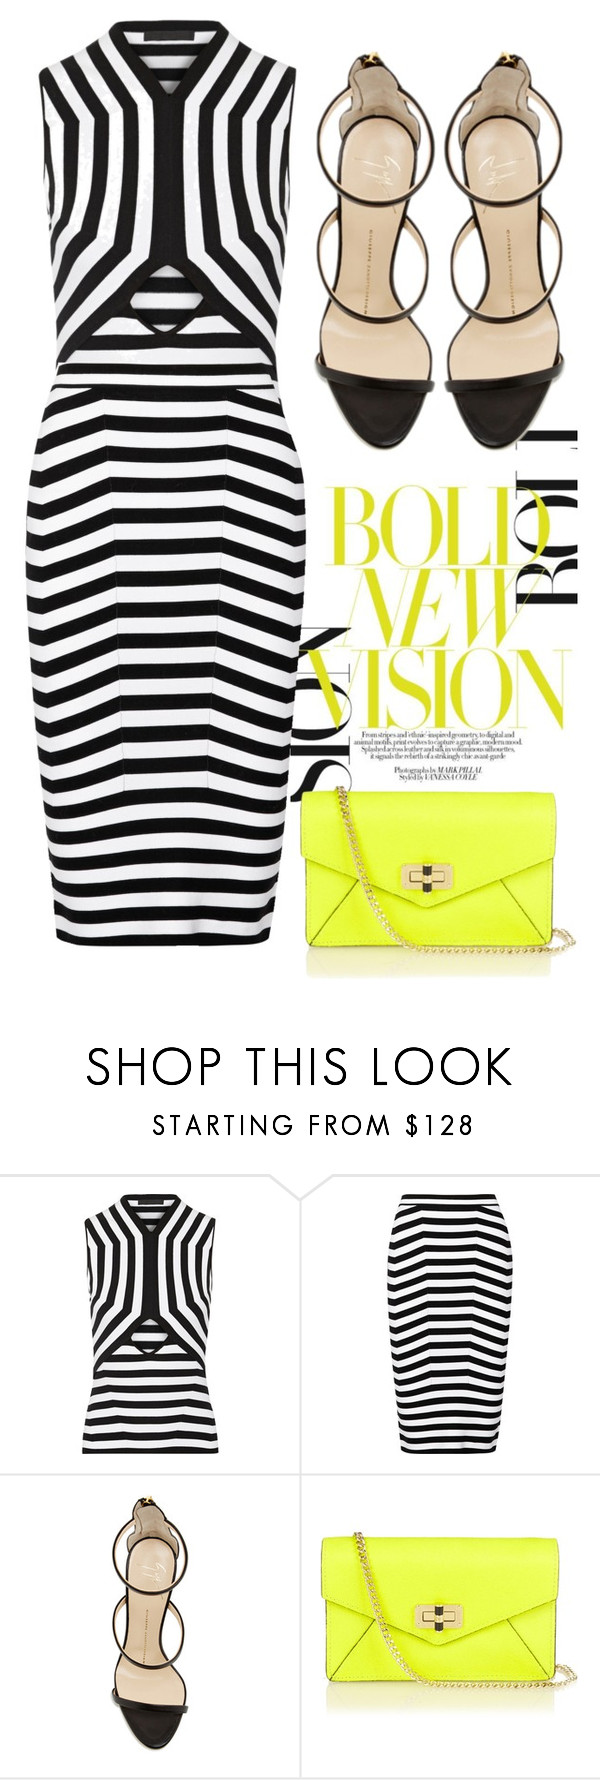 """Bold New Vision"" by cherieaustin on Polyvore featuring Alexander Wang, Giuseppe Zanotti, Diane Von Furstenberg, AlexanderWang, DVF, DianeVonFurstenberg and GiuseppeZanotti"